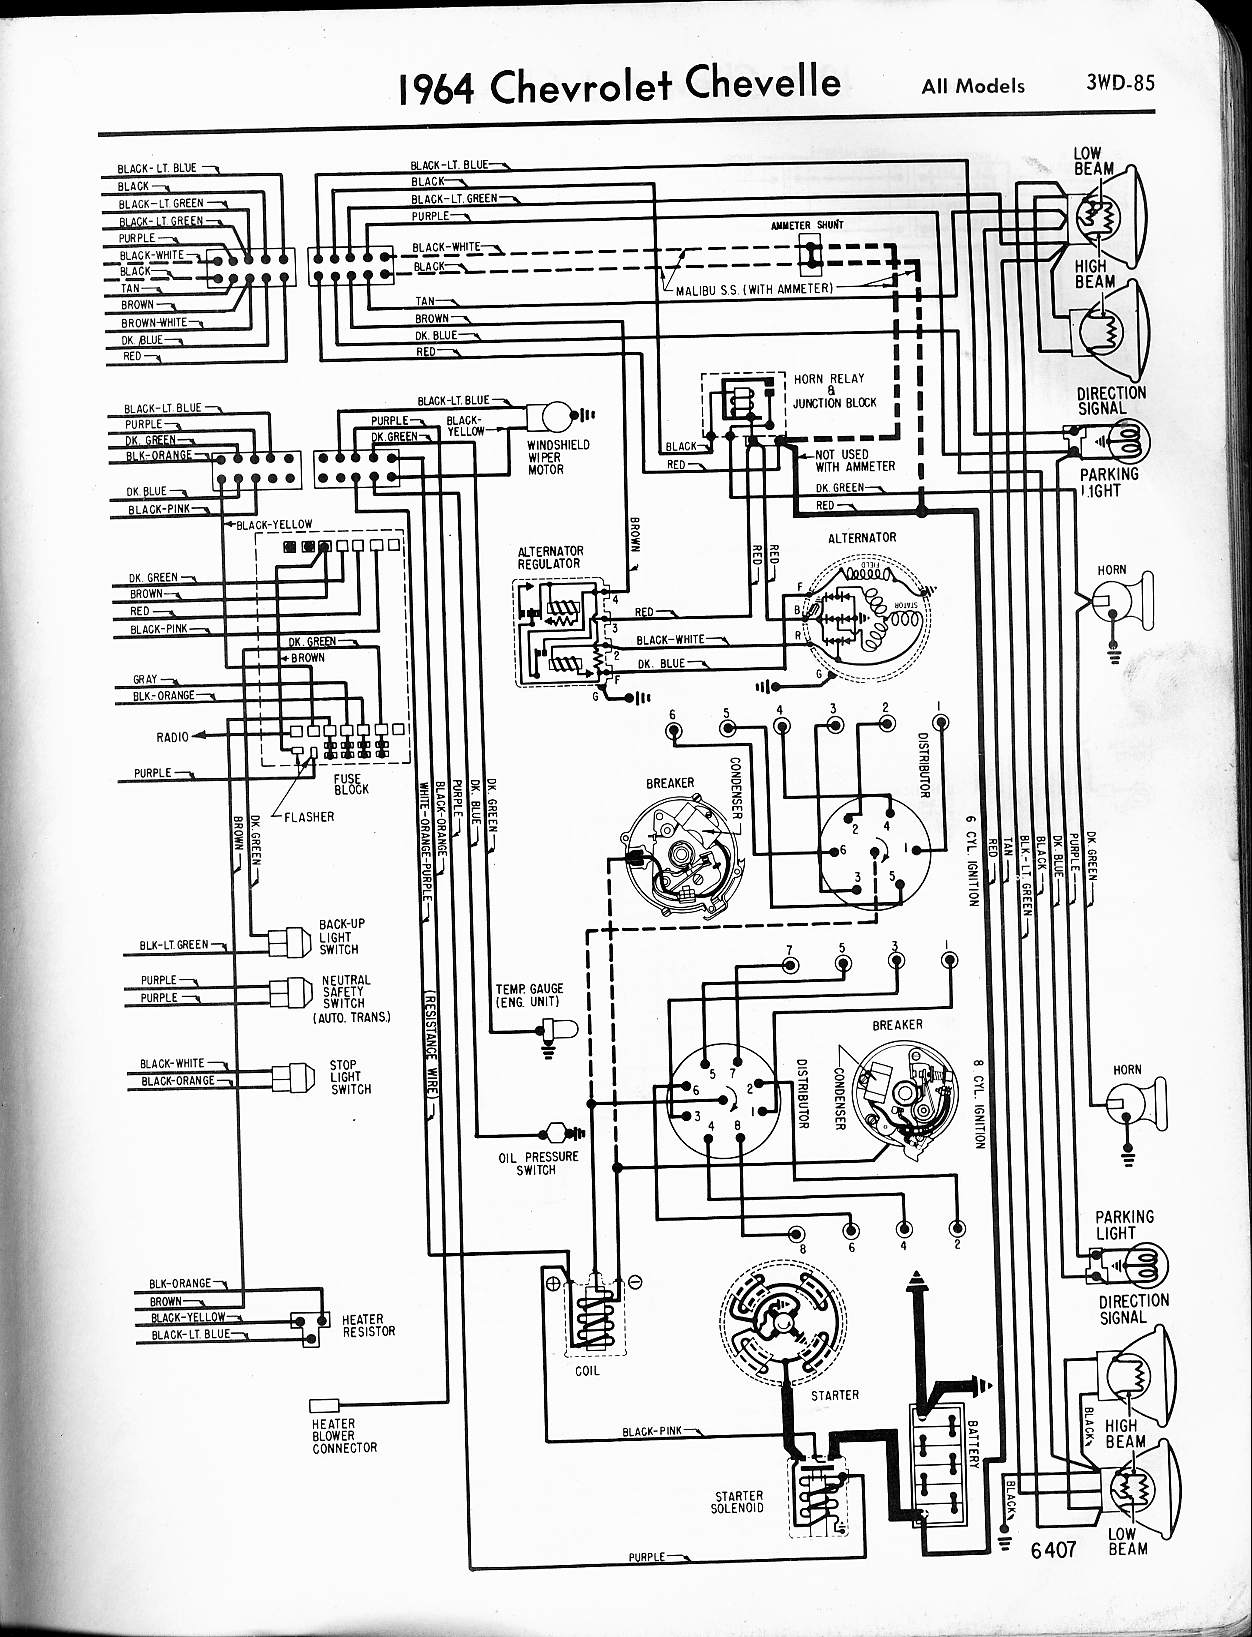 57 65 chevy wiring diagrams 1964 chevelle left